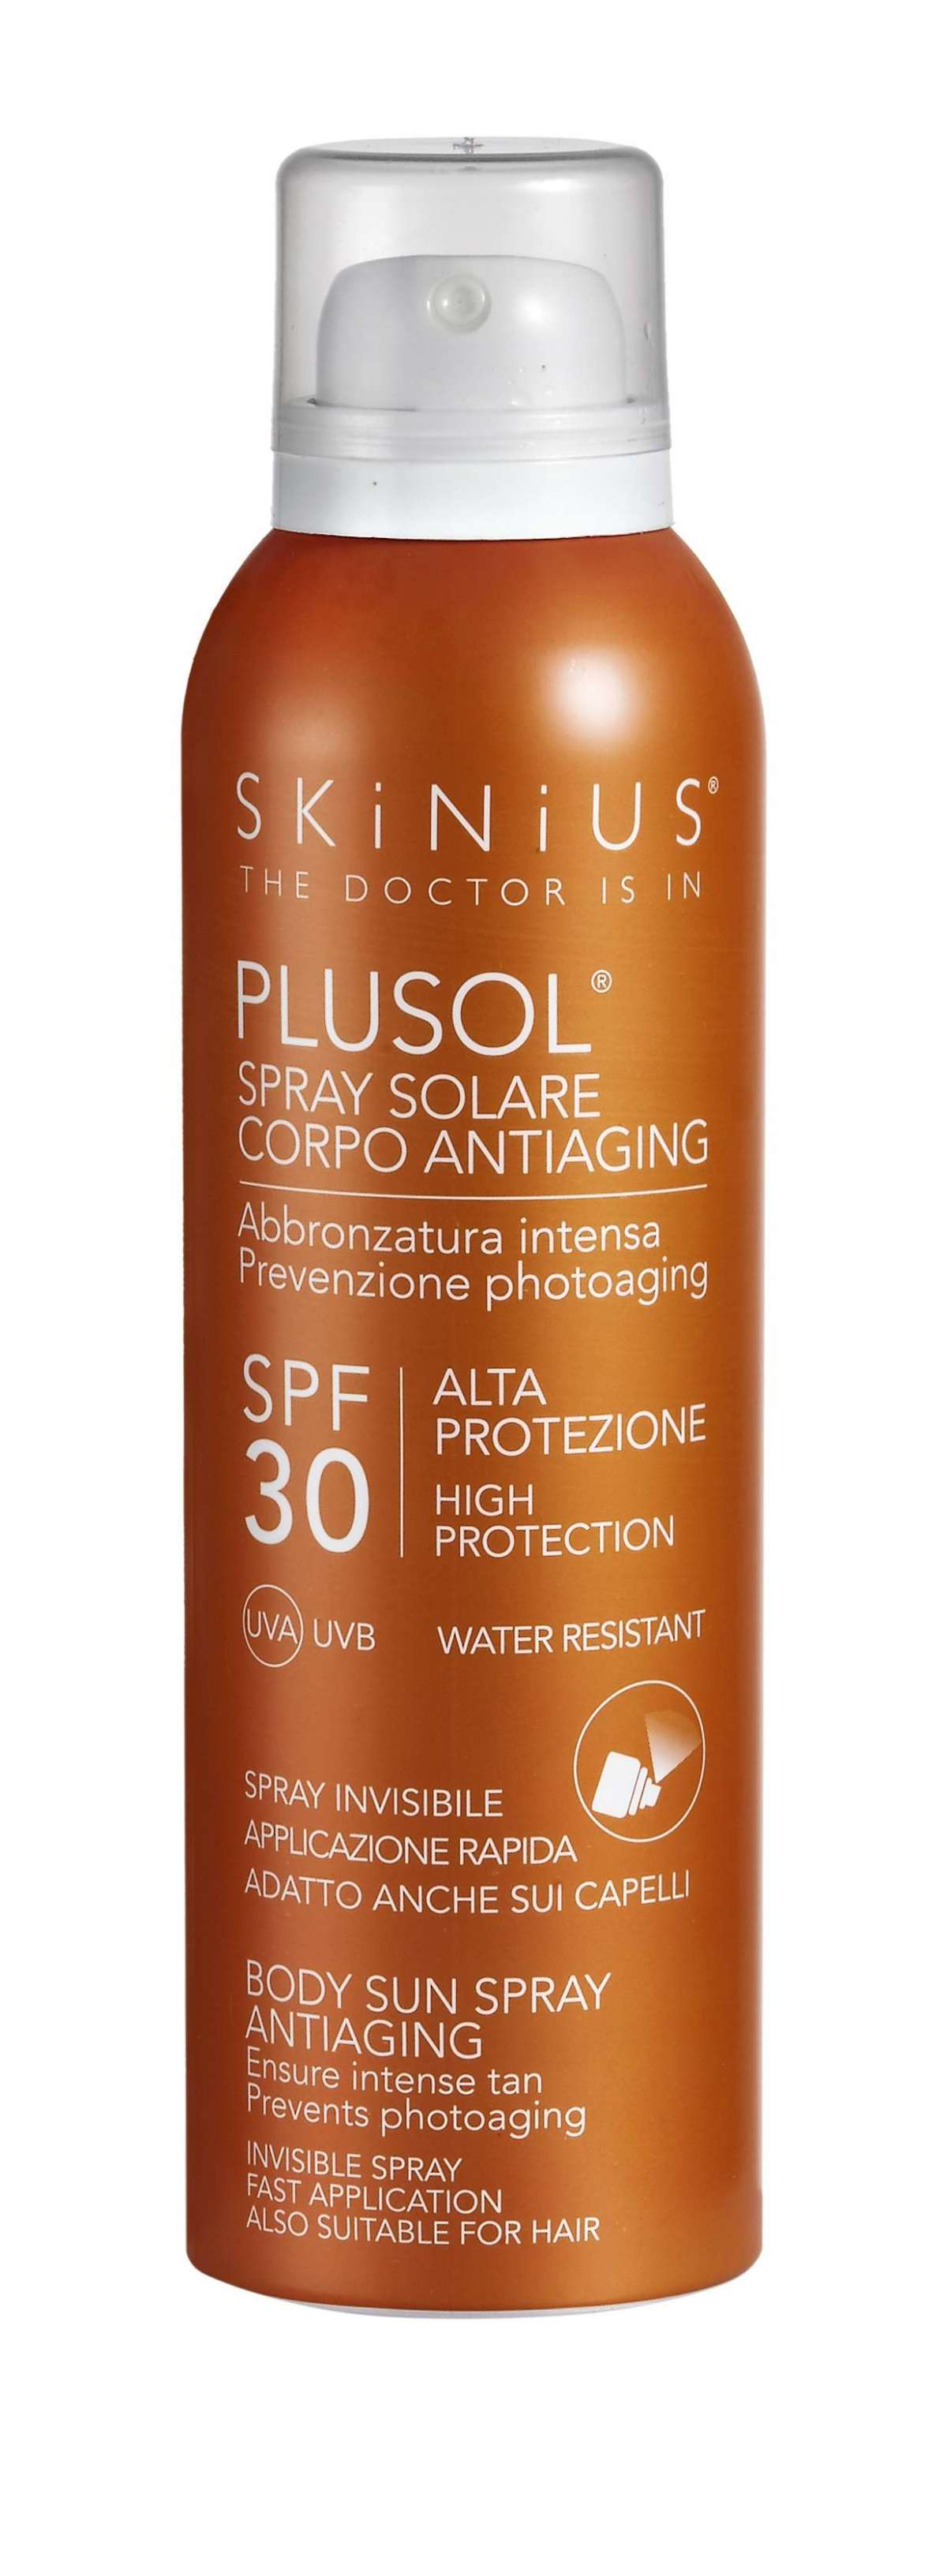 Skinius PLUSOL Spray Solare Corpo